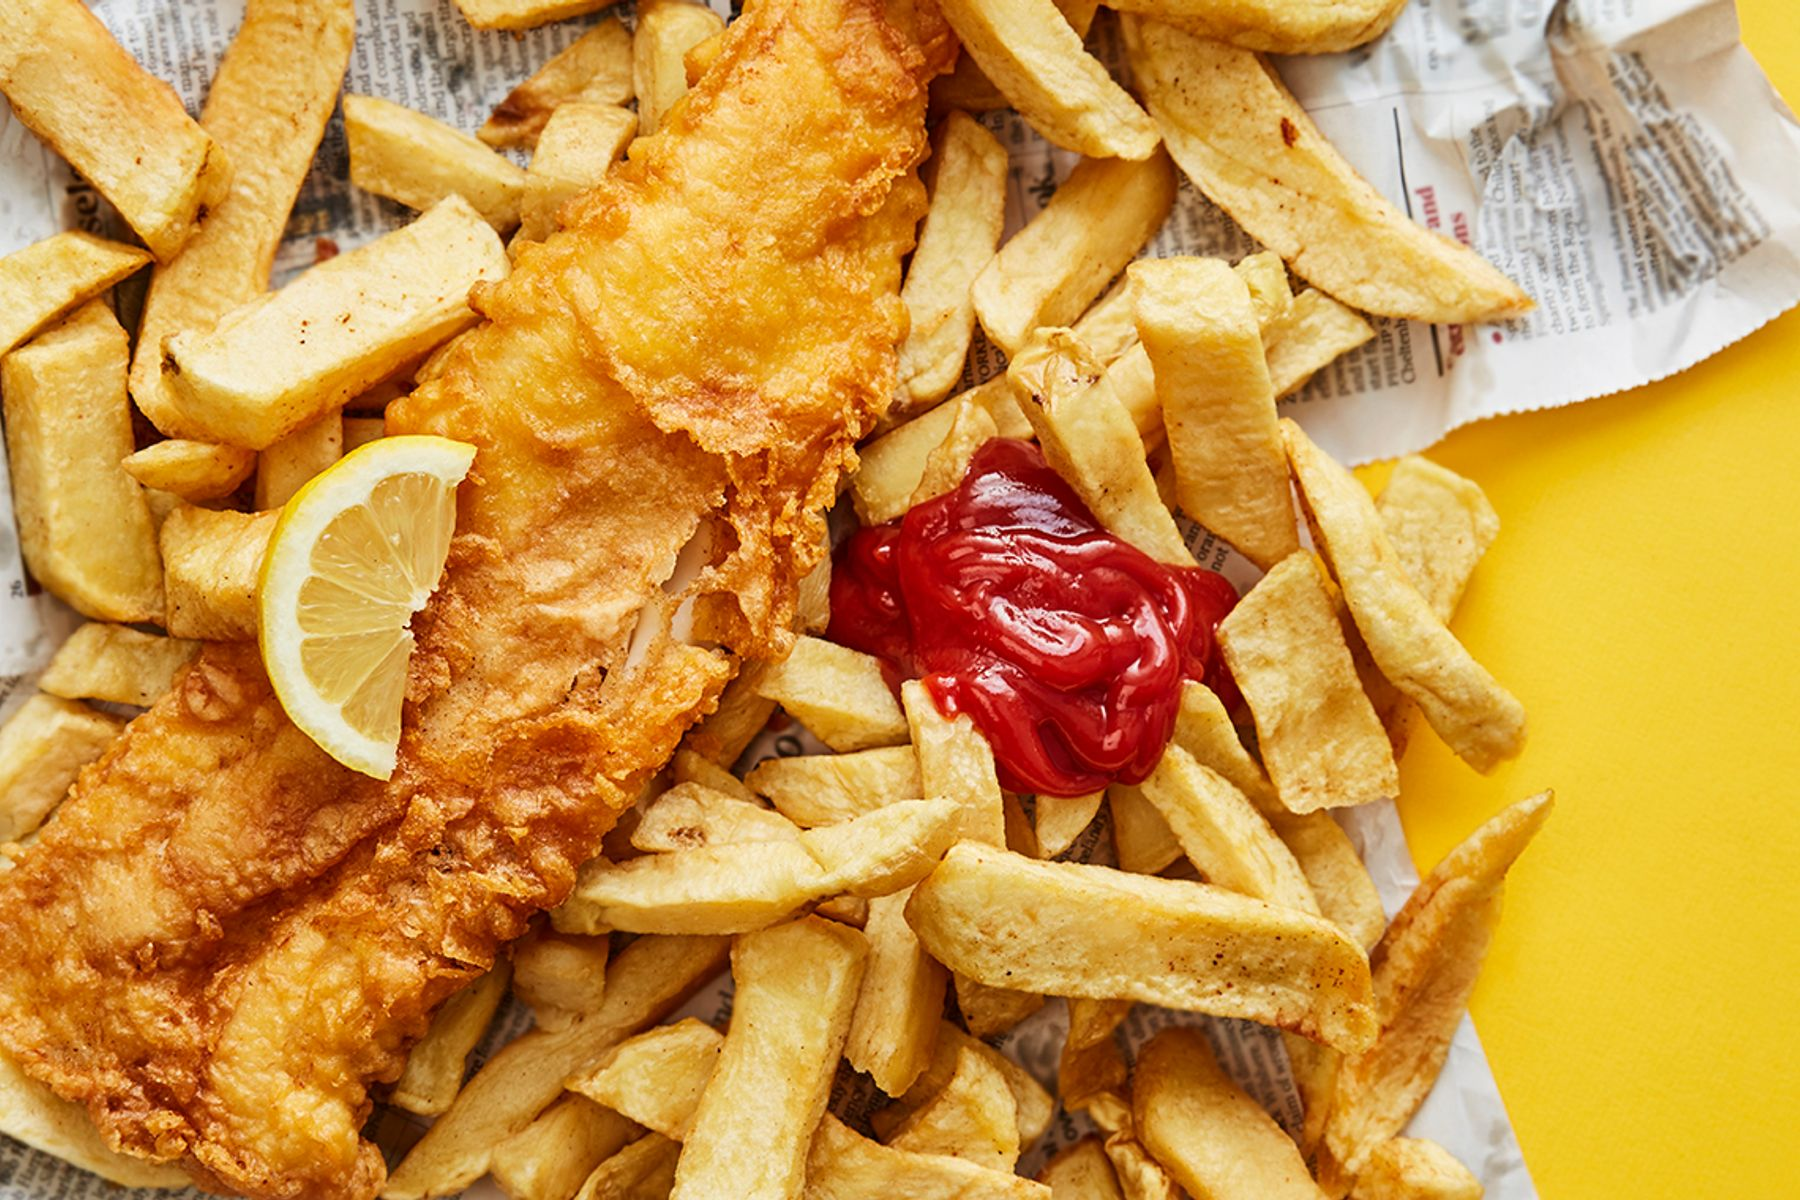 fish and chips on newspaper packaging against a yellow background